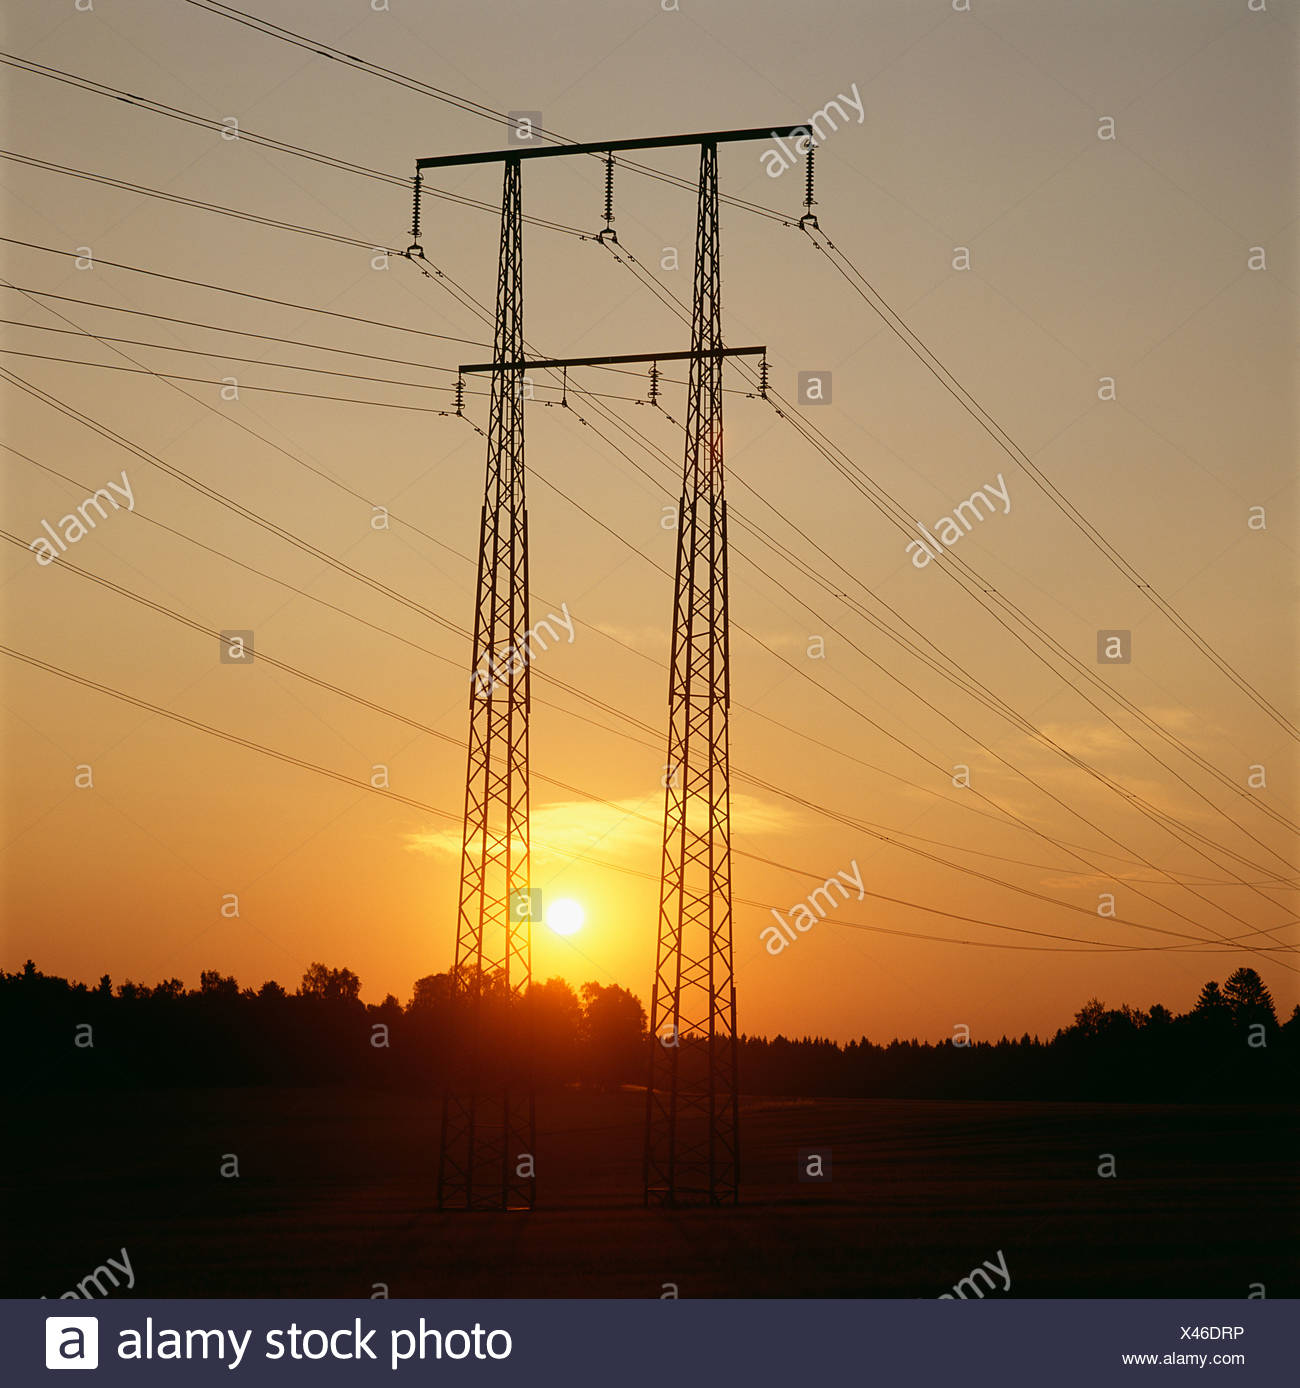 View of electricity pylon at dusk - Stock Image